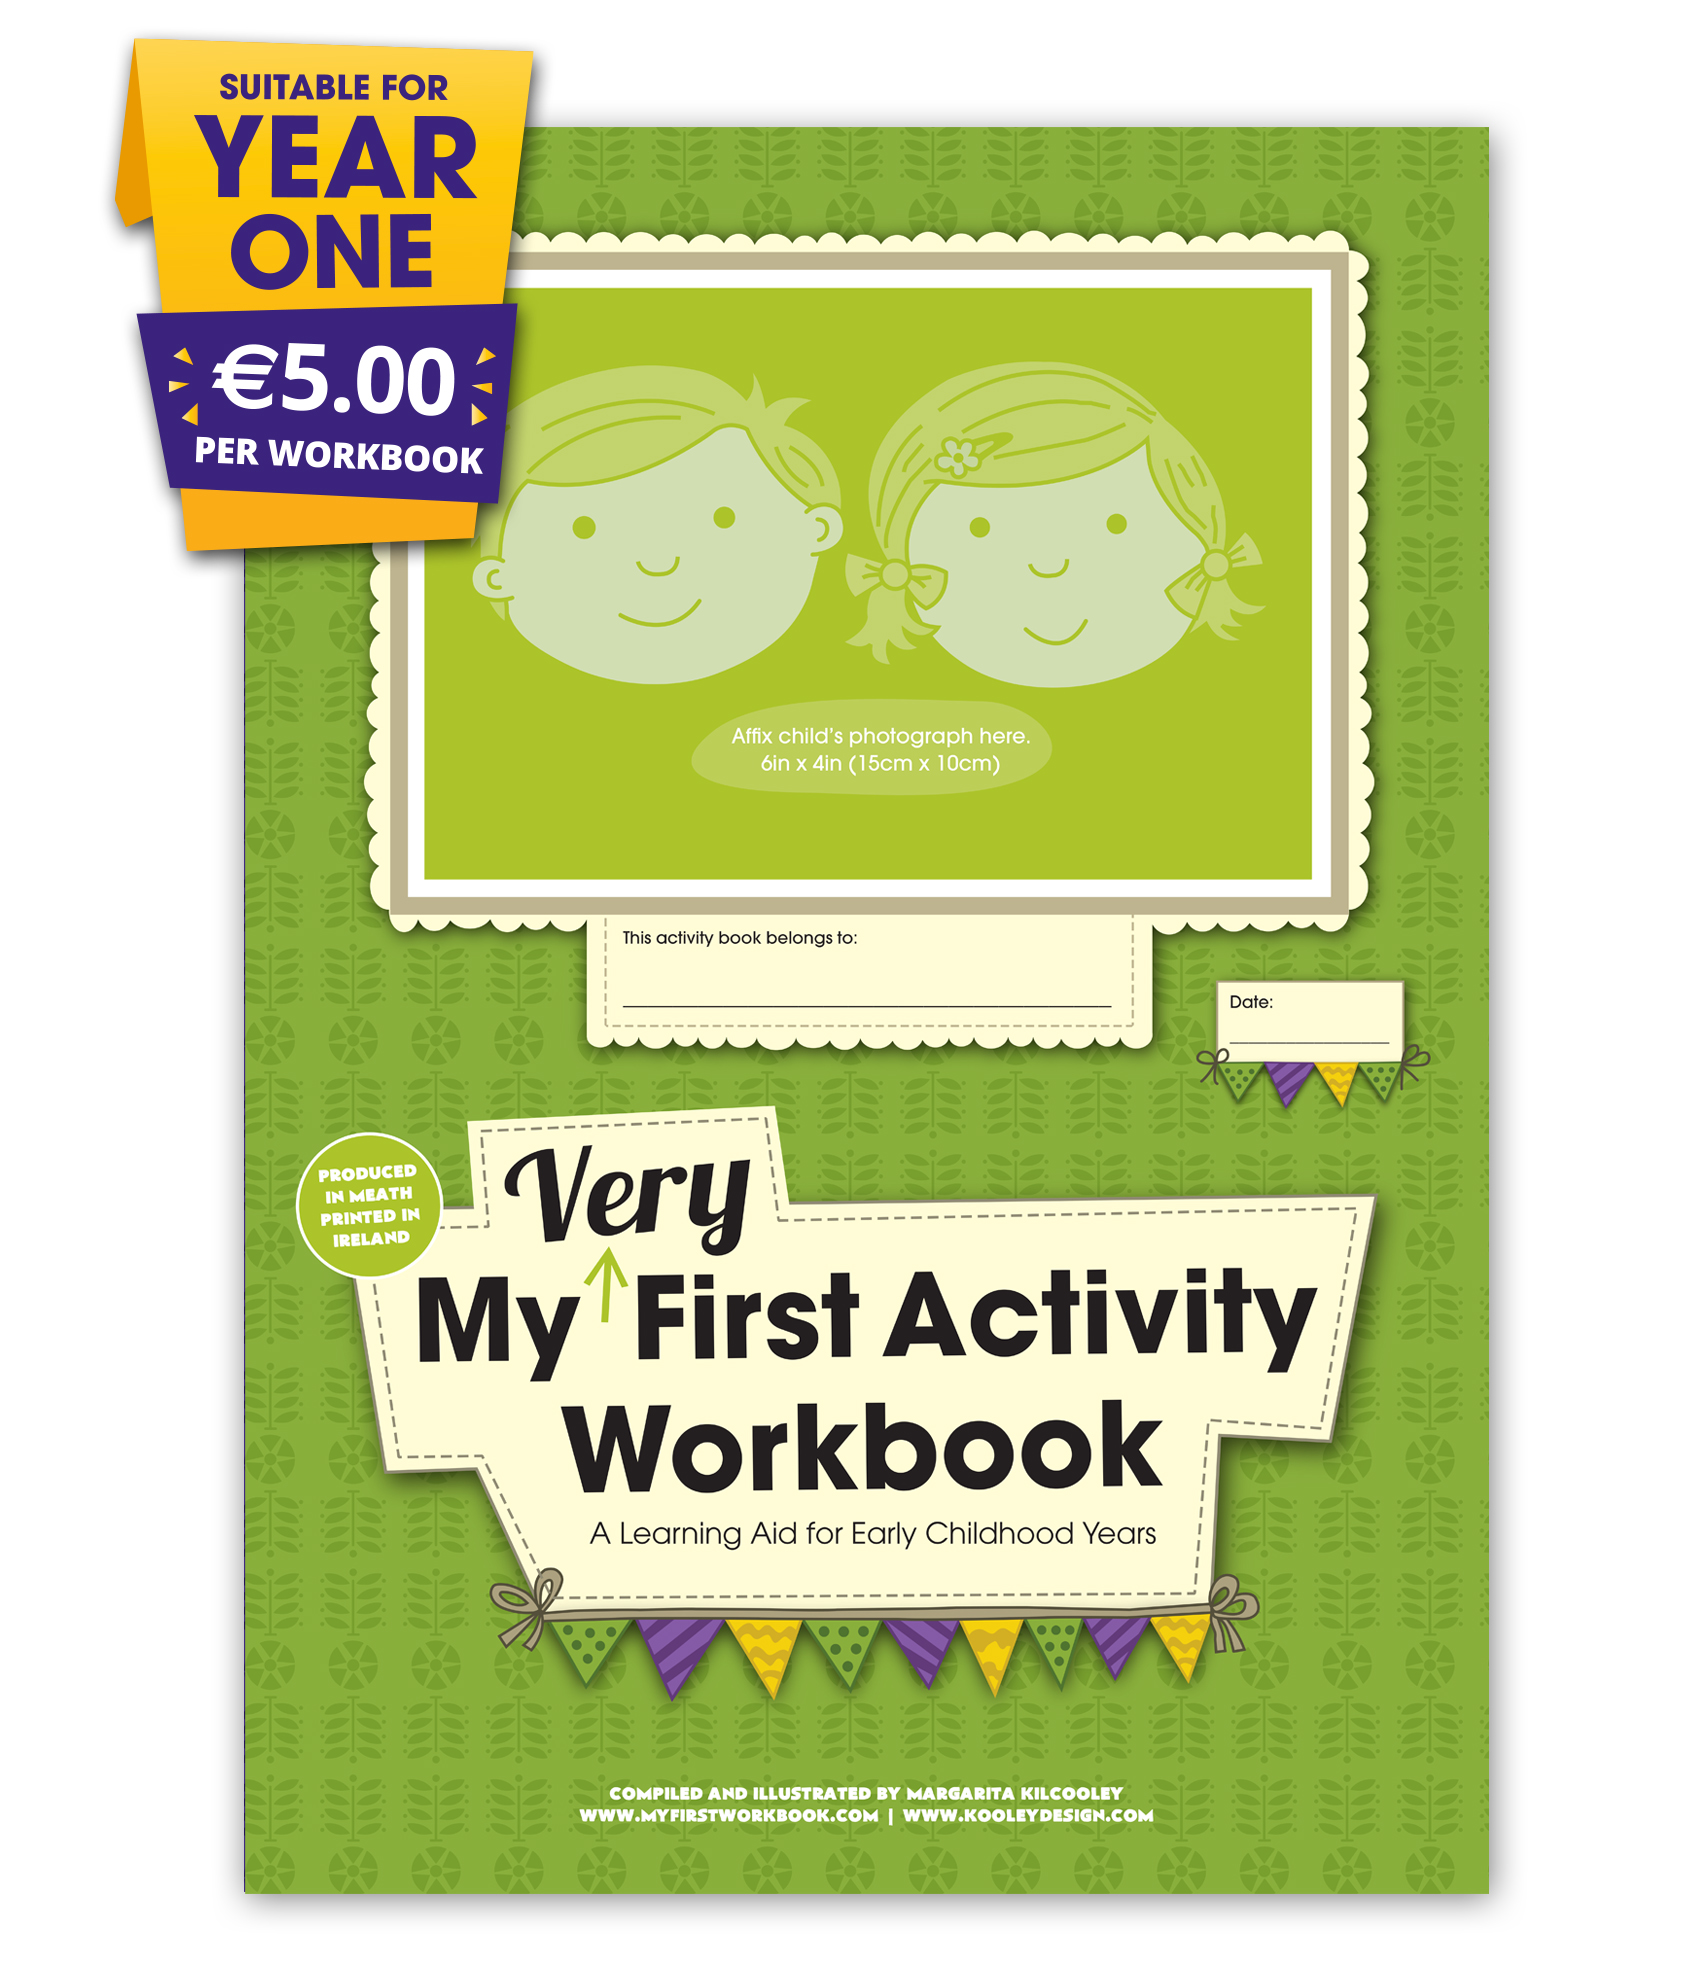 my very first activity workbook front cover for preschool & montessori